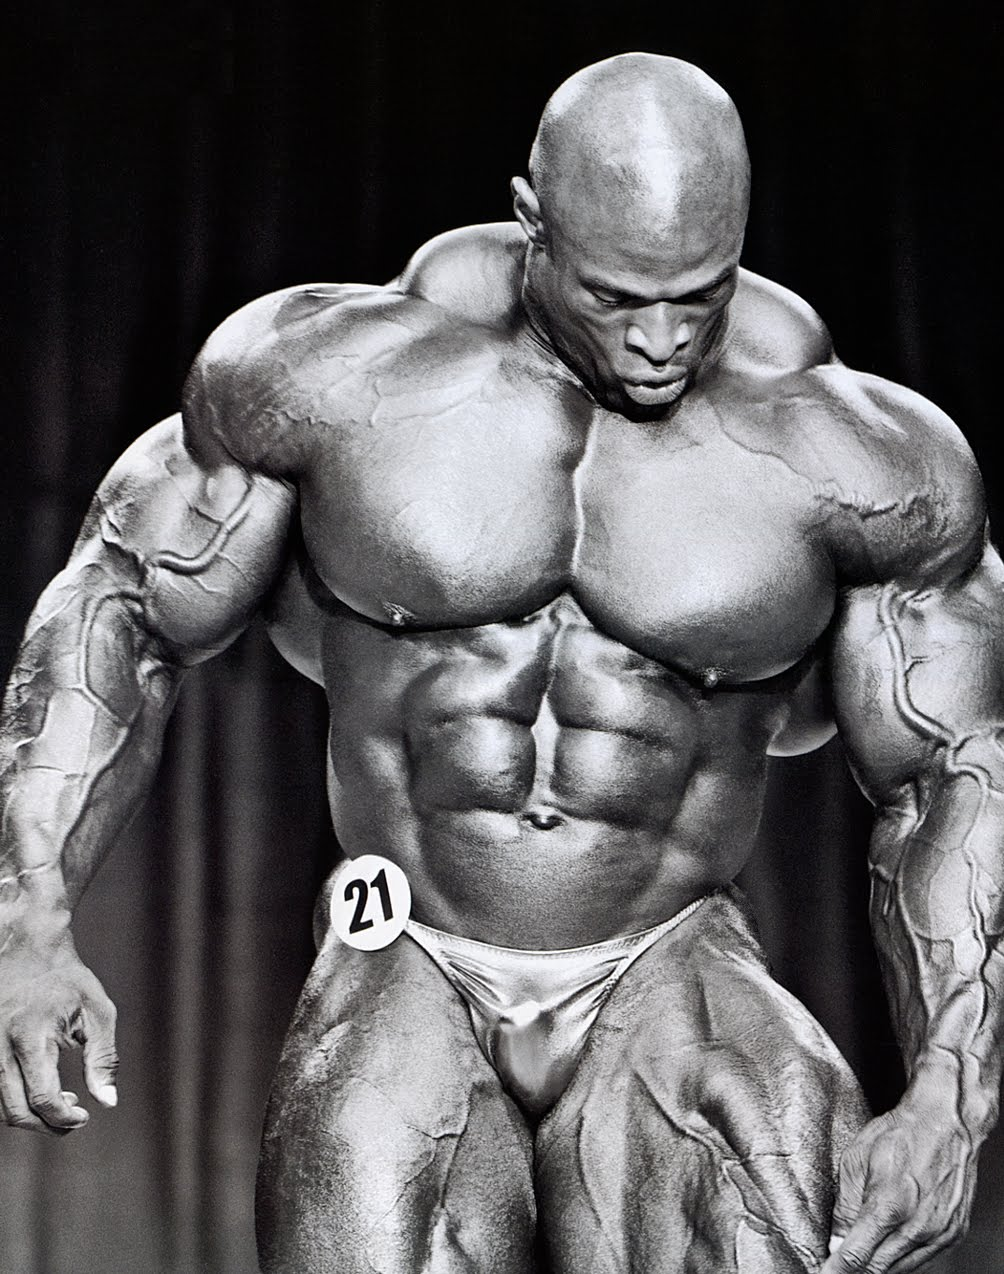 ronnie coleman the greatest bodybuilder of all time neogaf